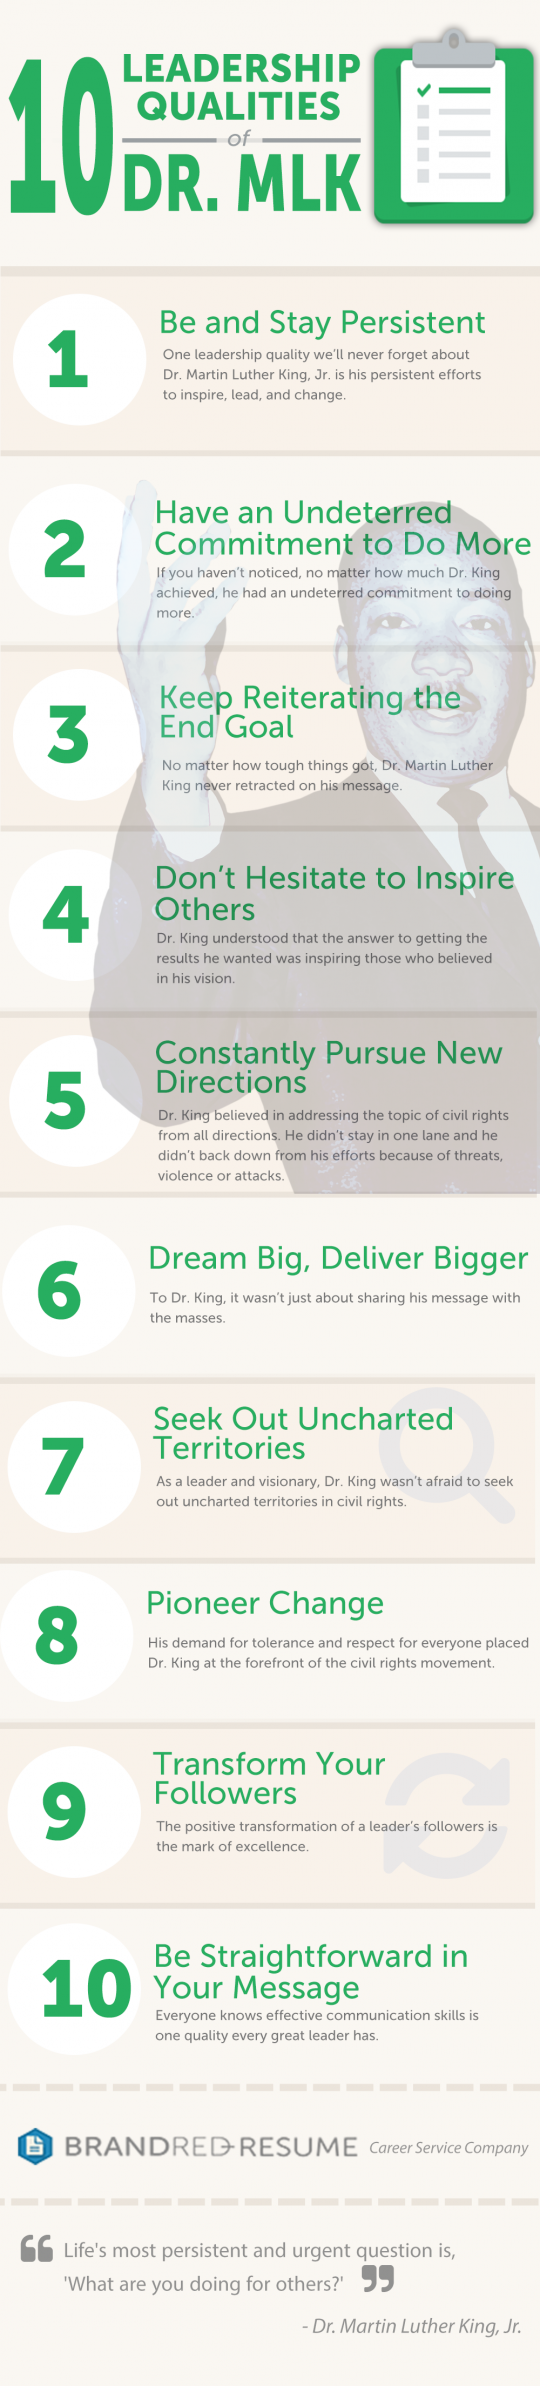 10 Leadership Qualities of Dr. Martin Luther King, Jr.